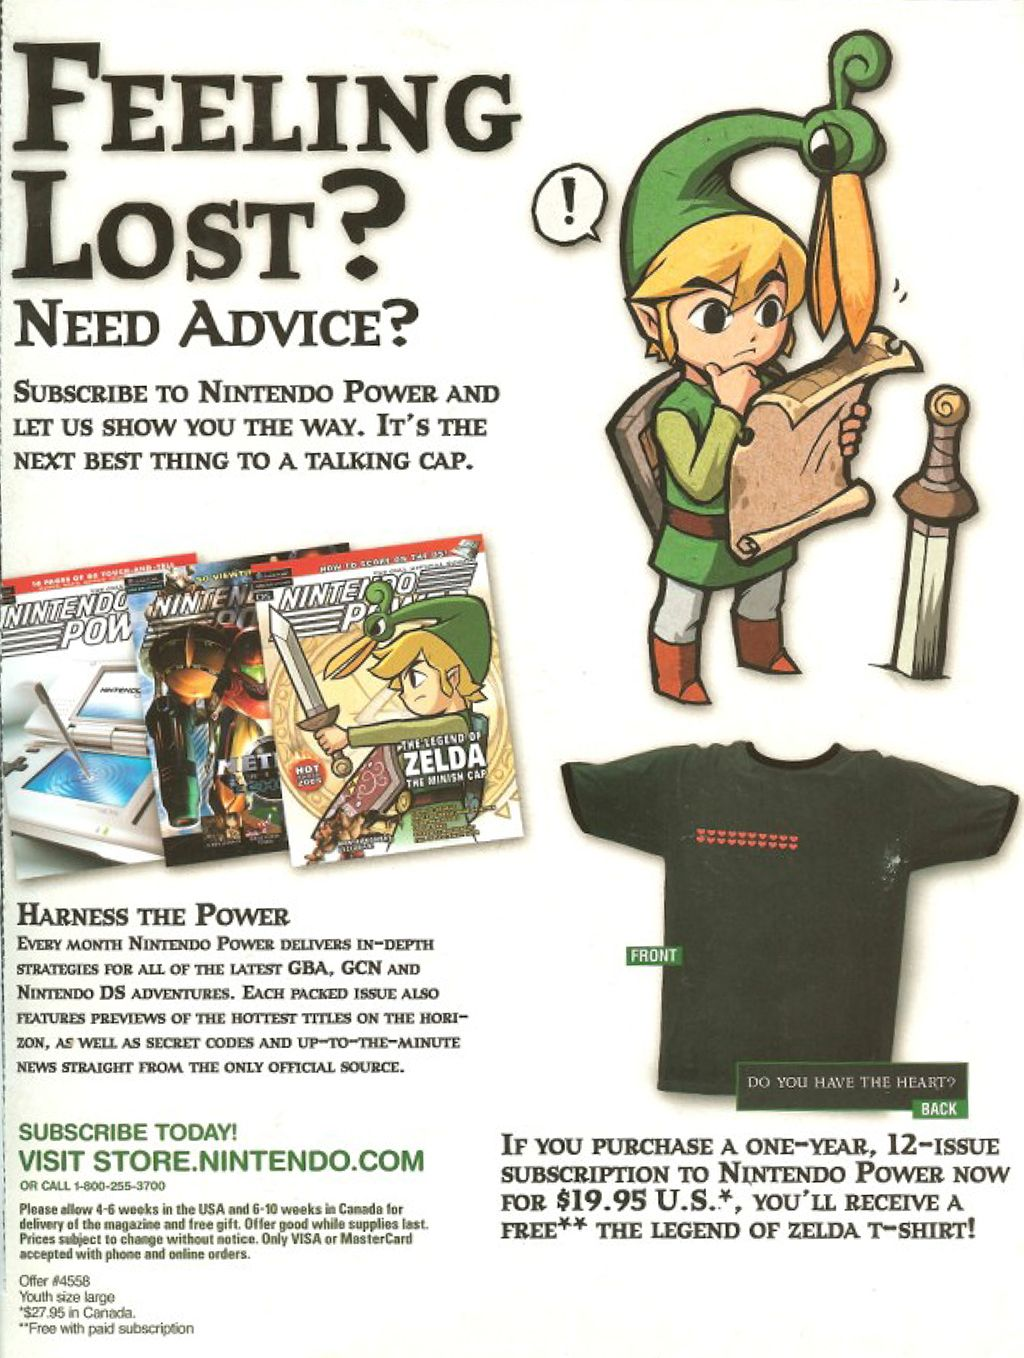 Game Boy Advance Nintendo Power Ad (in The Legend of